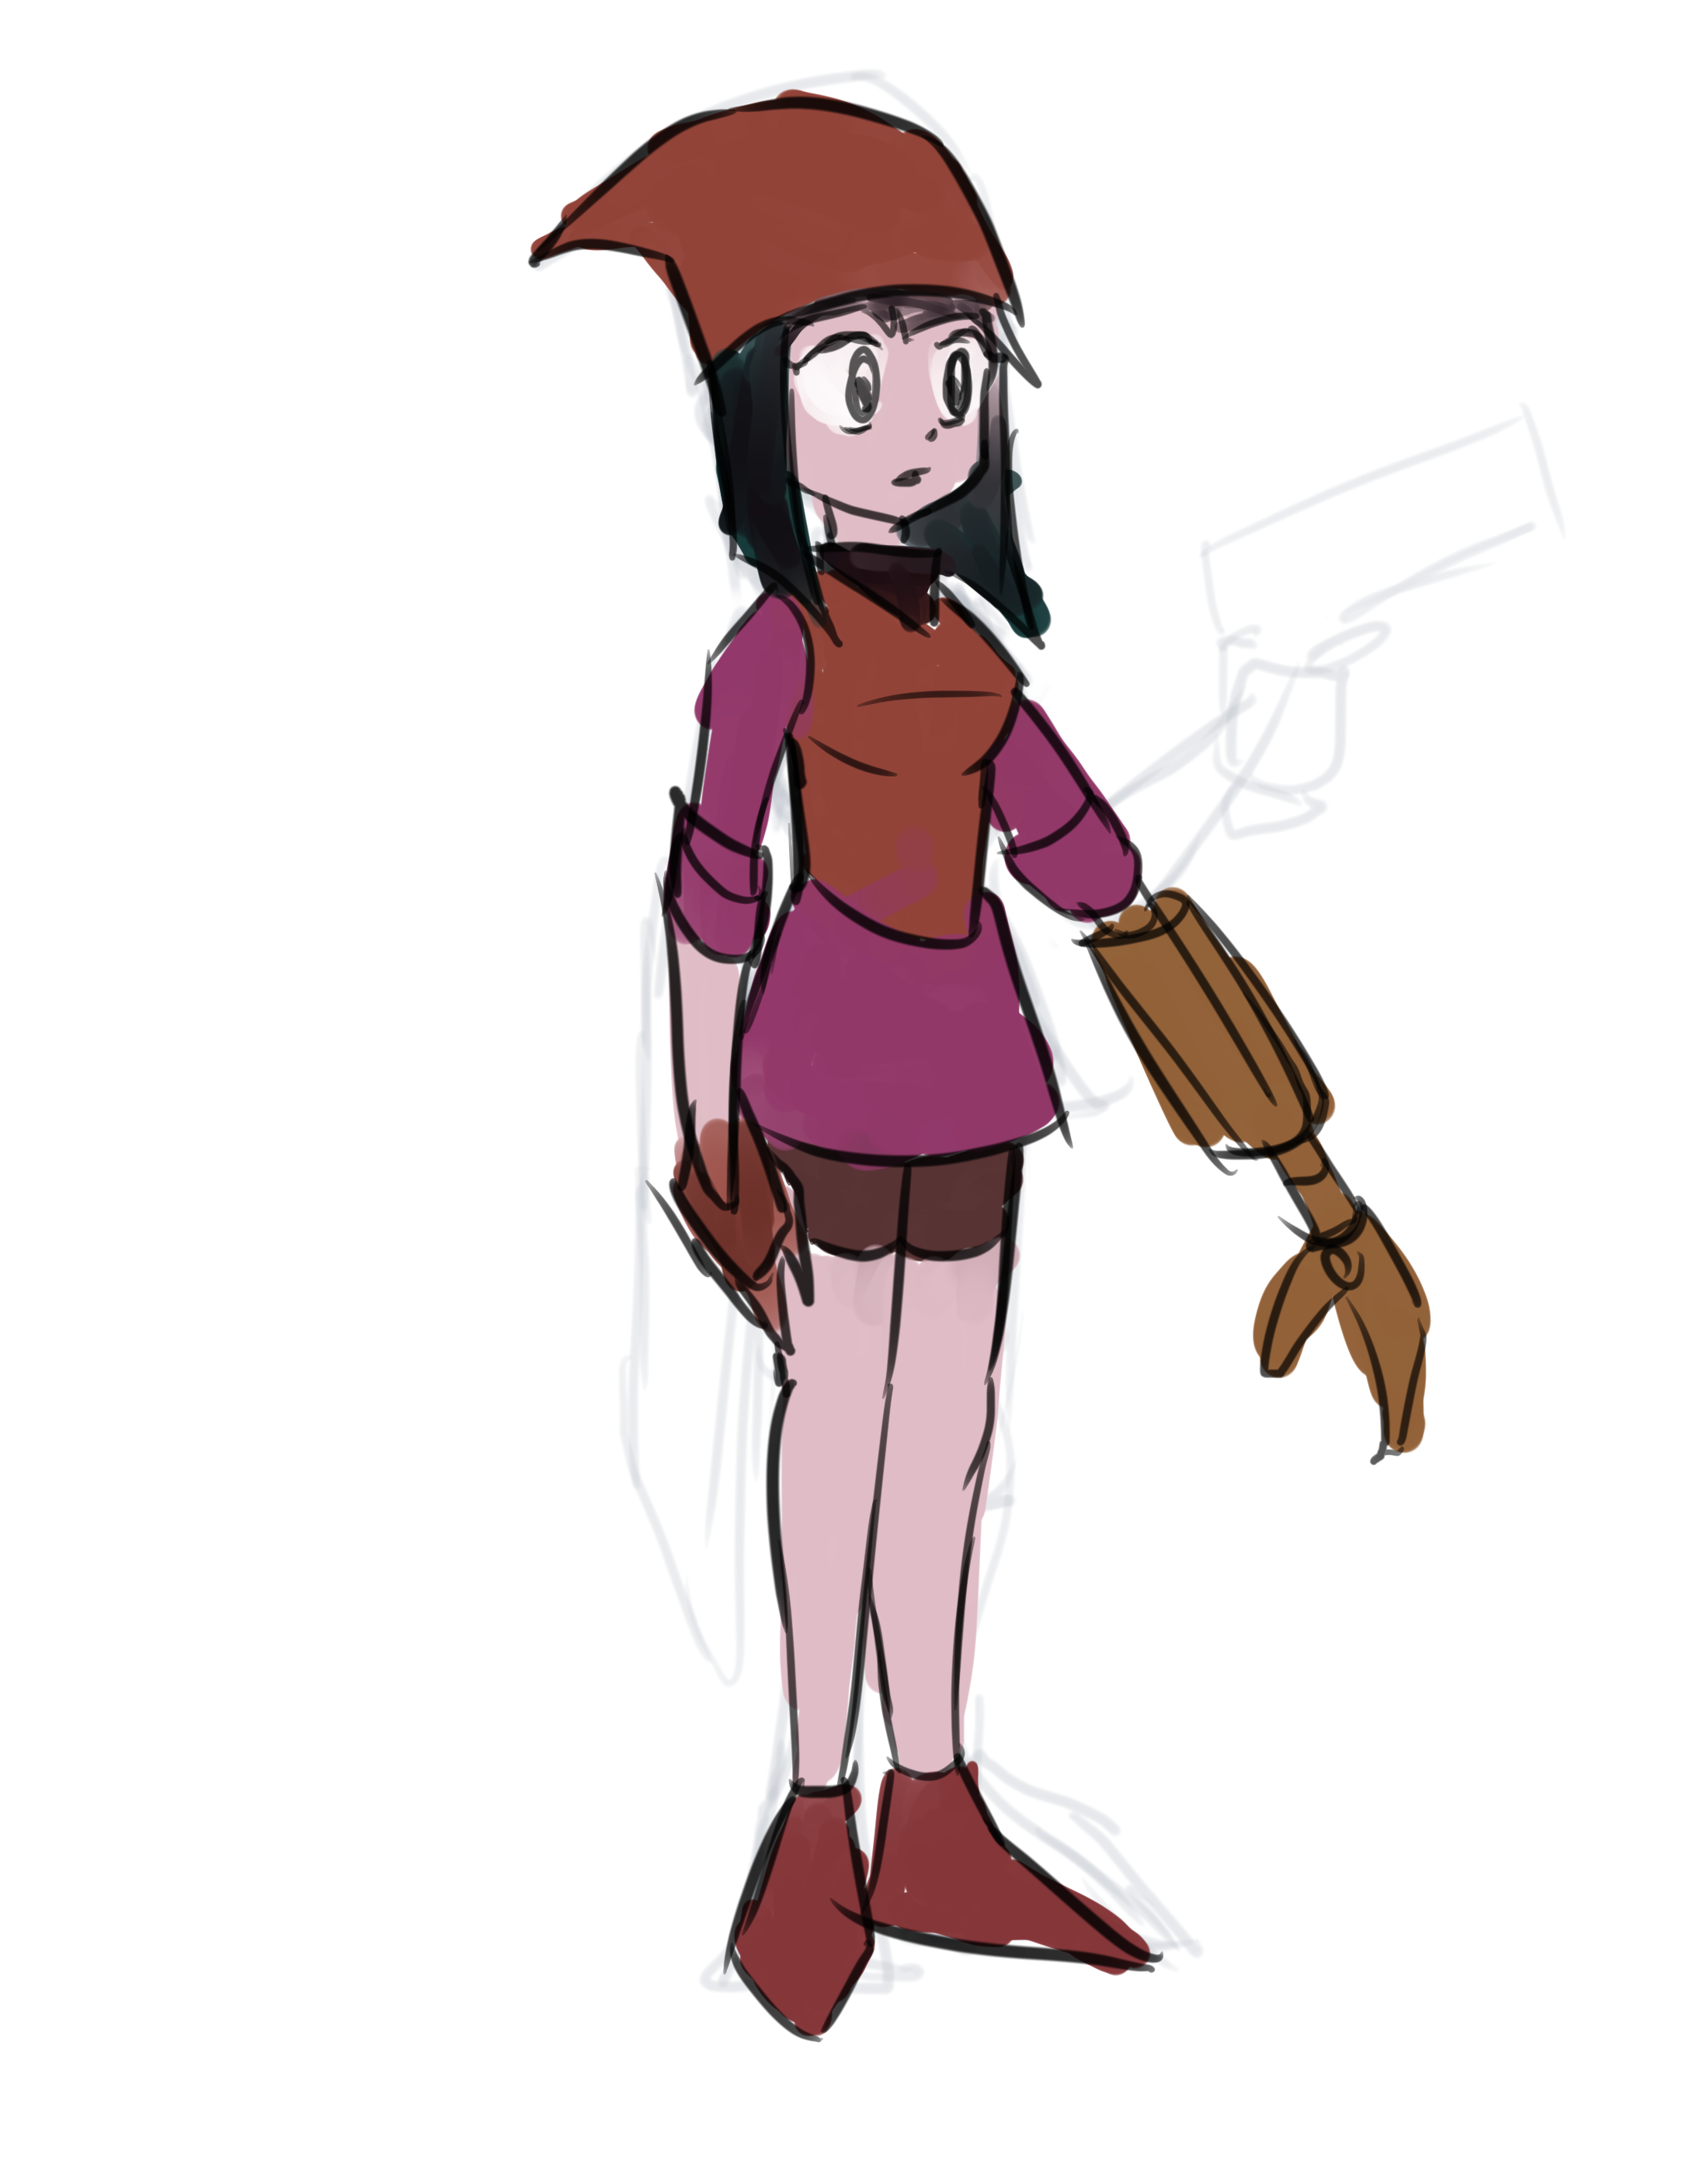 Rough Character Concept